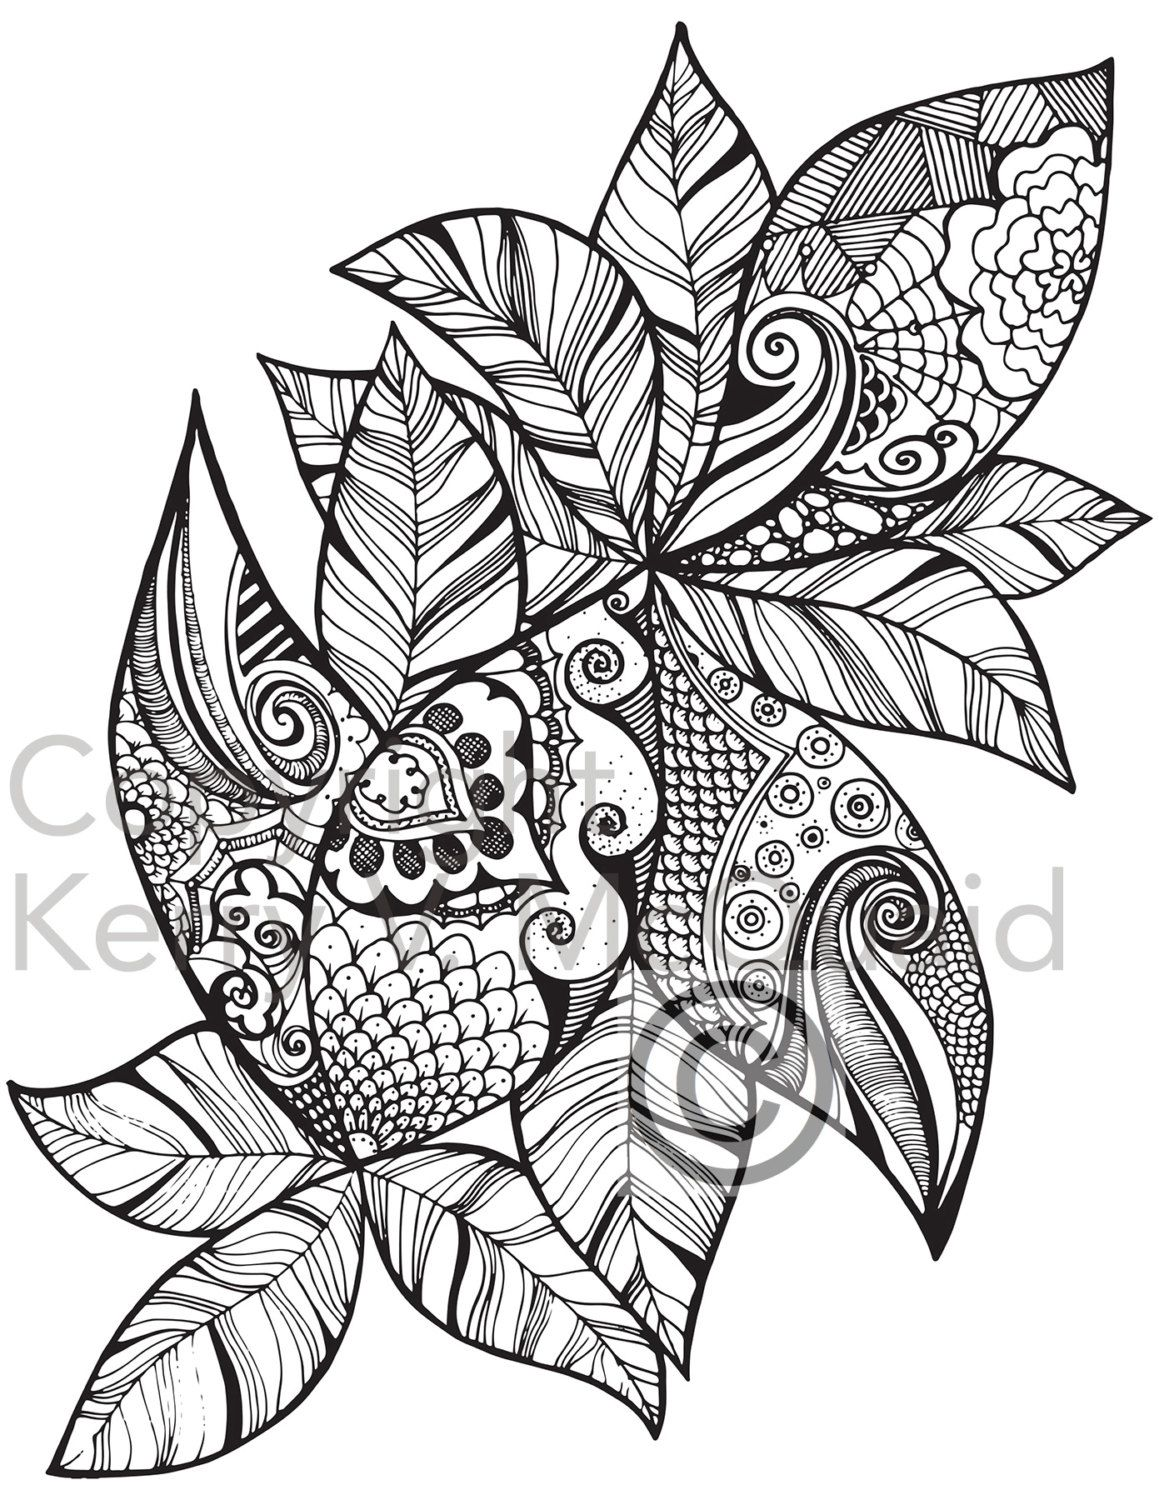 leaf coloring pages for adults - photo#17